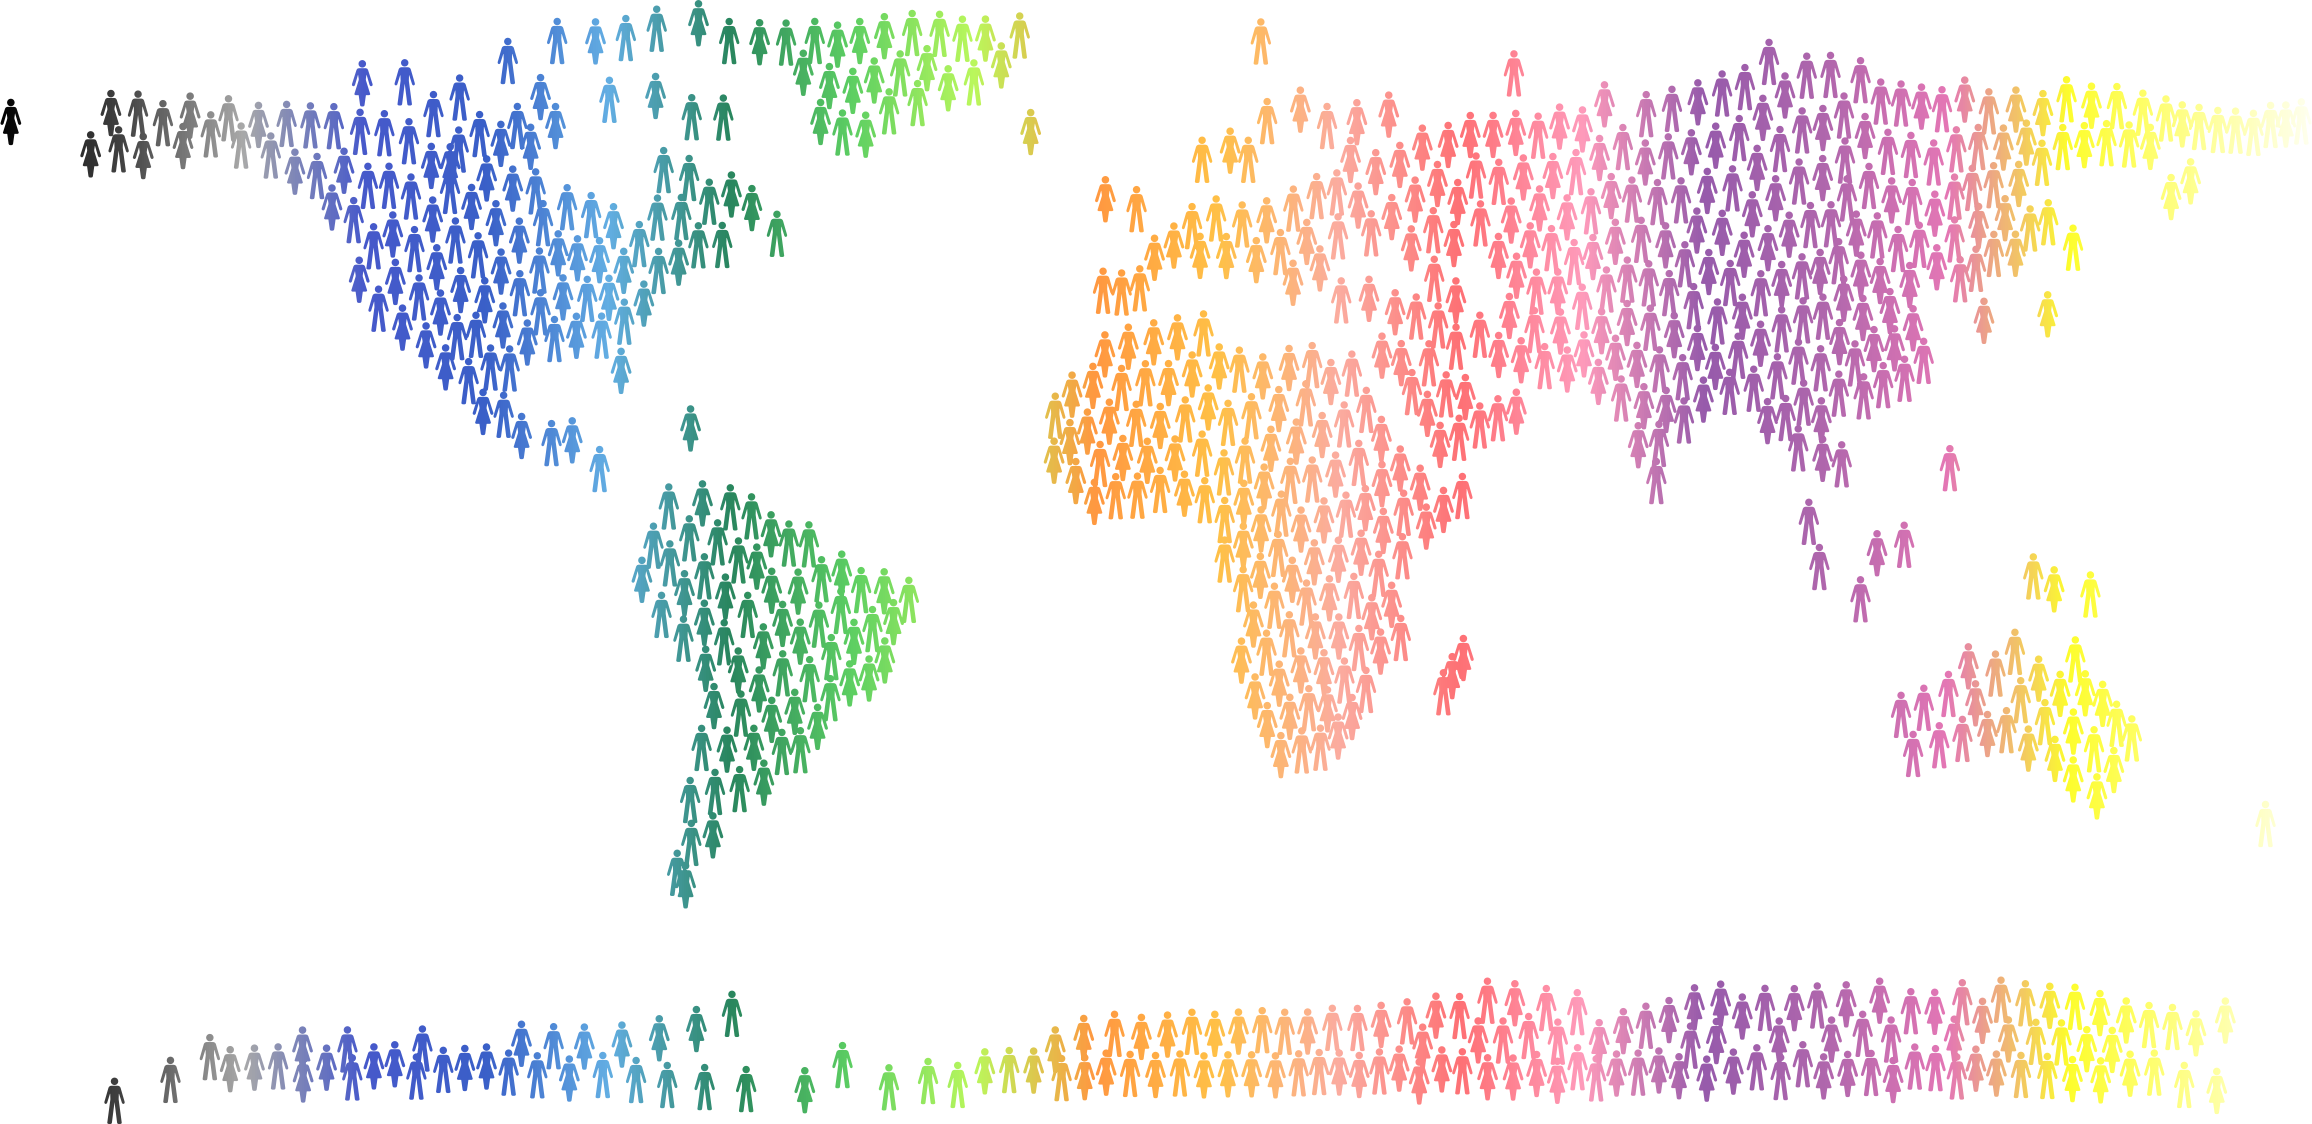 People World Map Prismatic 4 by GDJ